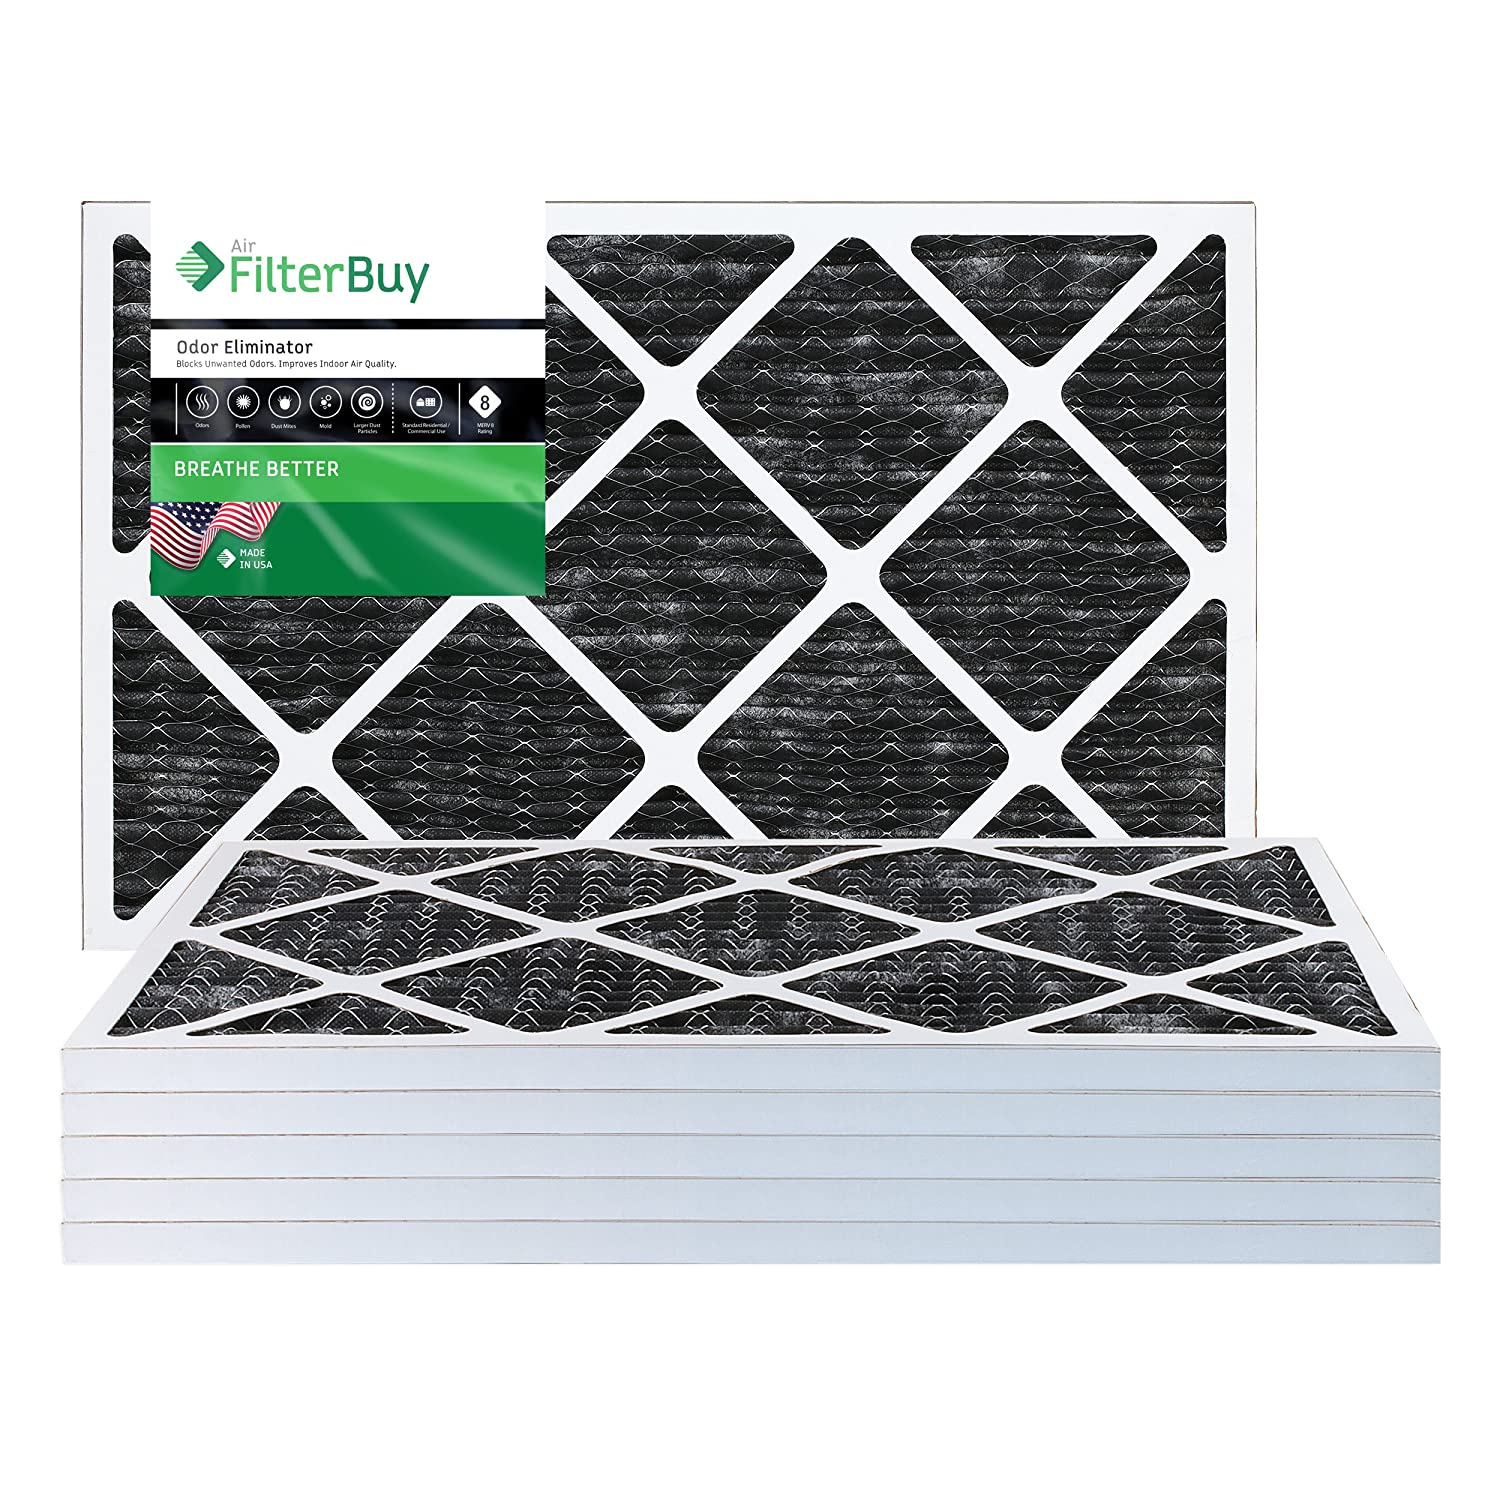 Pack of 4-20x25x1 FilterBuy Allergen Odor Eliminator 20x25x1 MERV 8 Pleated AC Furnace Air Filter with Activated Carbon